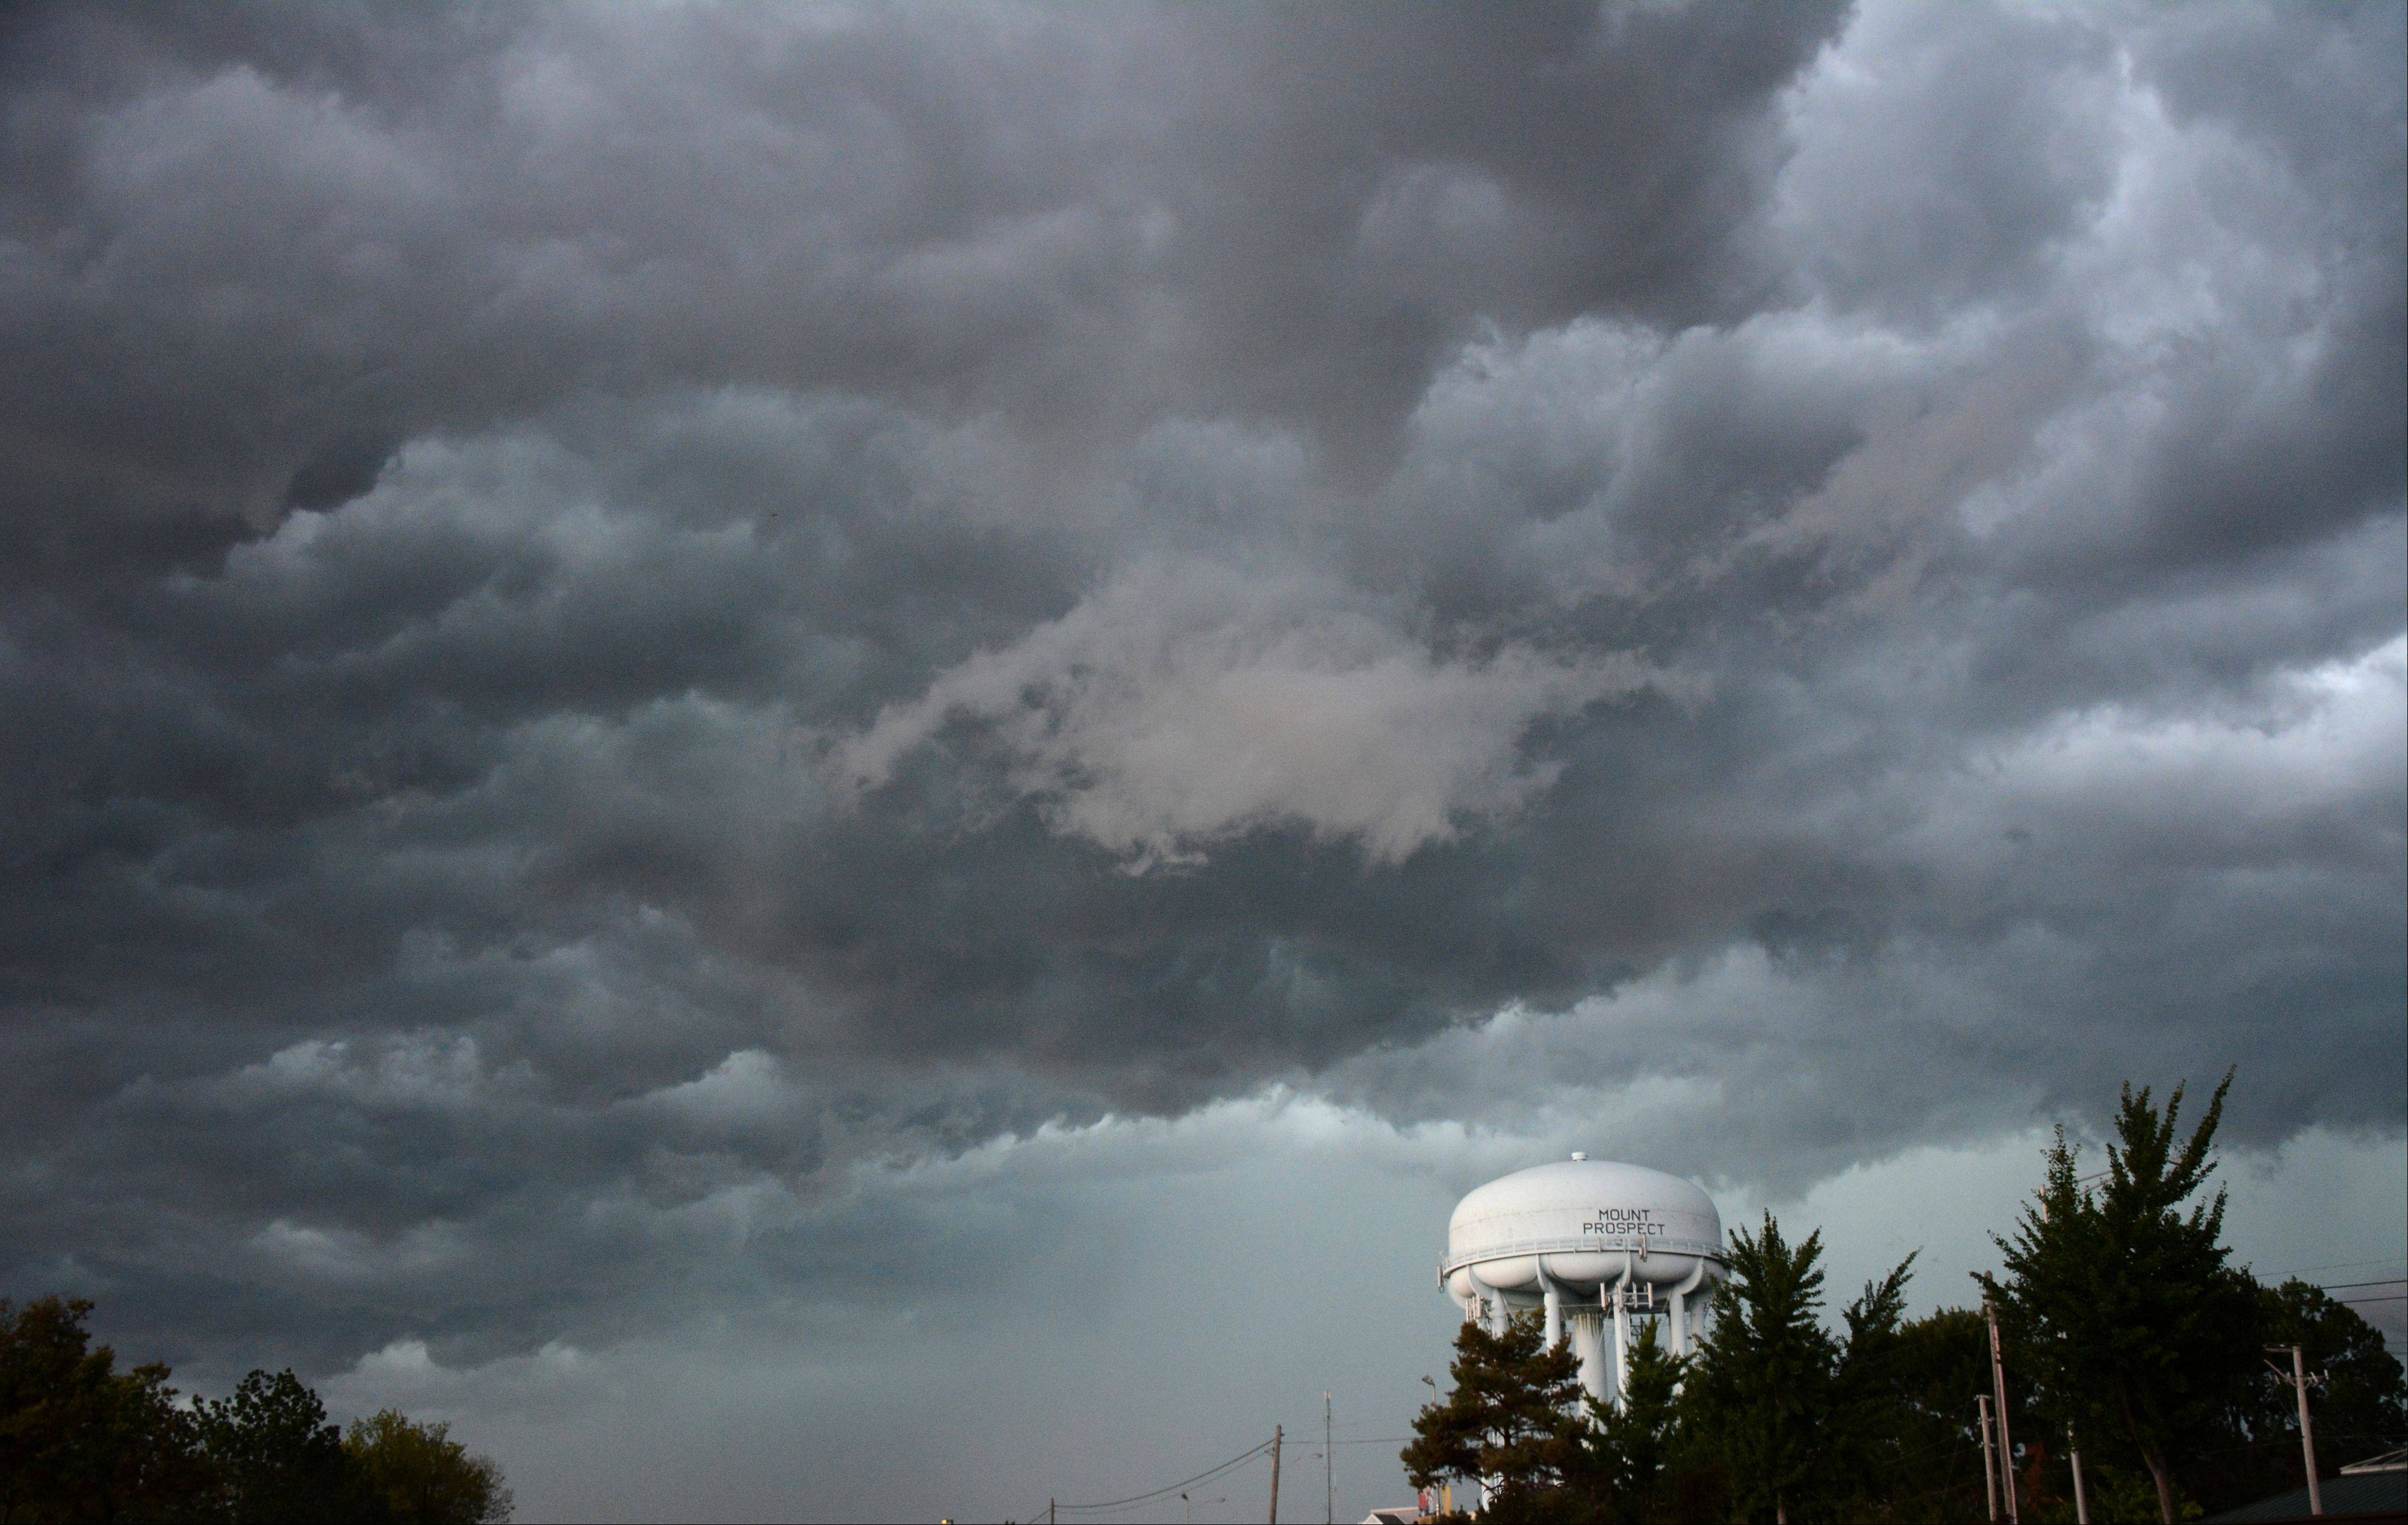 An intense storm rolls in Friday night over a water tower in Rolling Meadows.